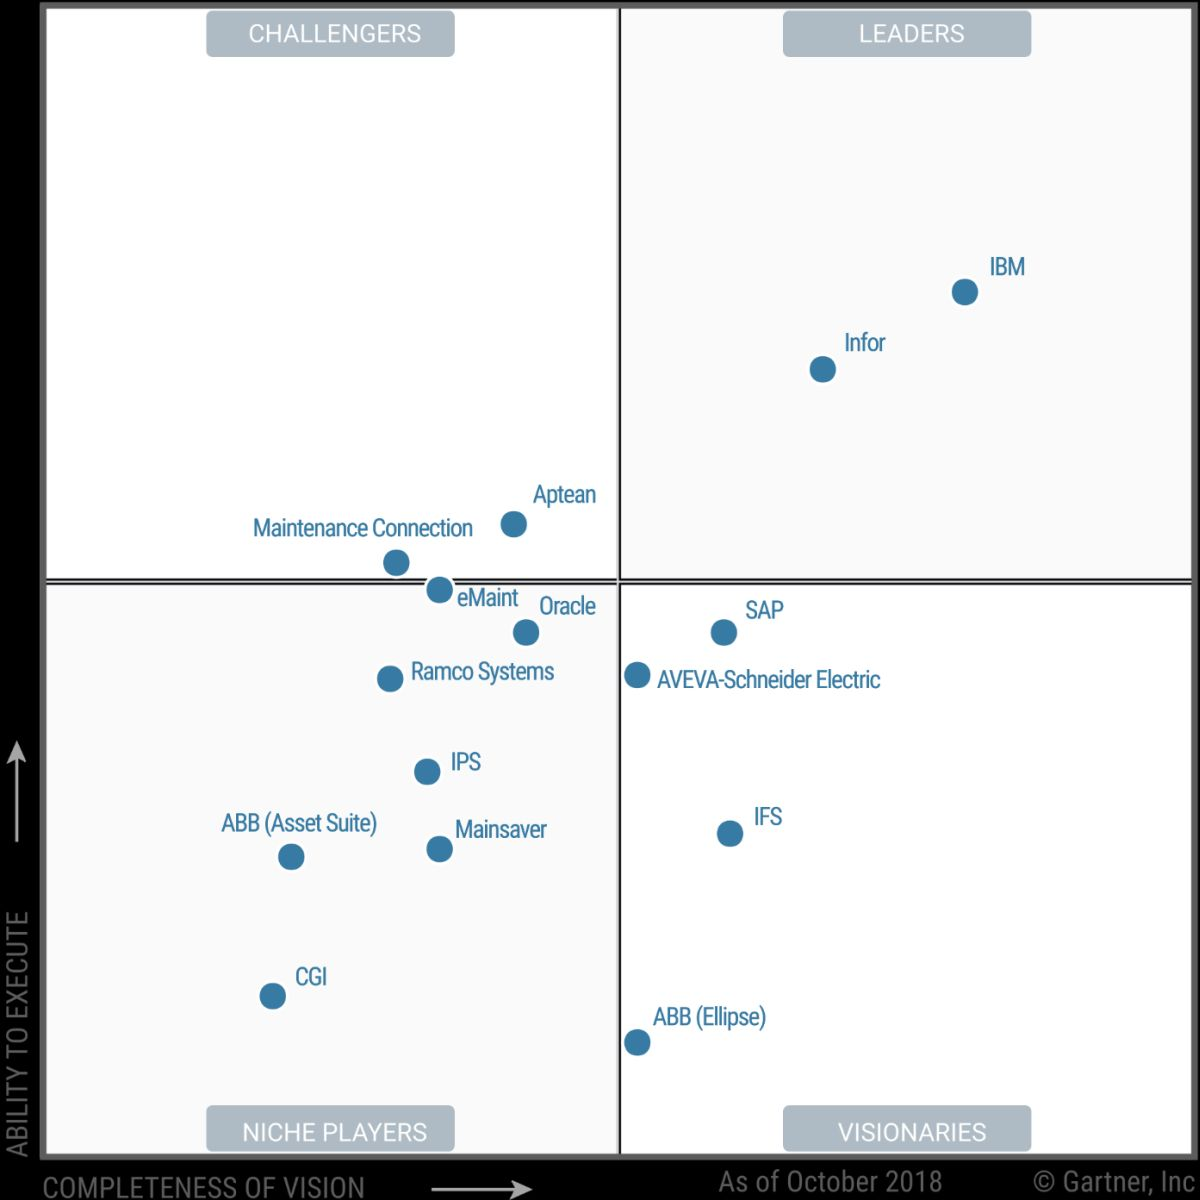 The industrial leader with Gartner Magic Quadrant for EAM